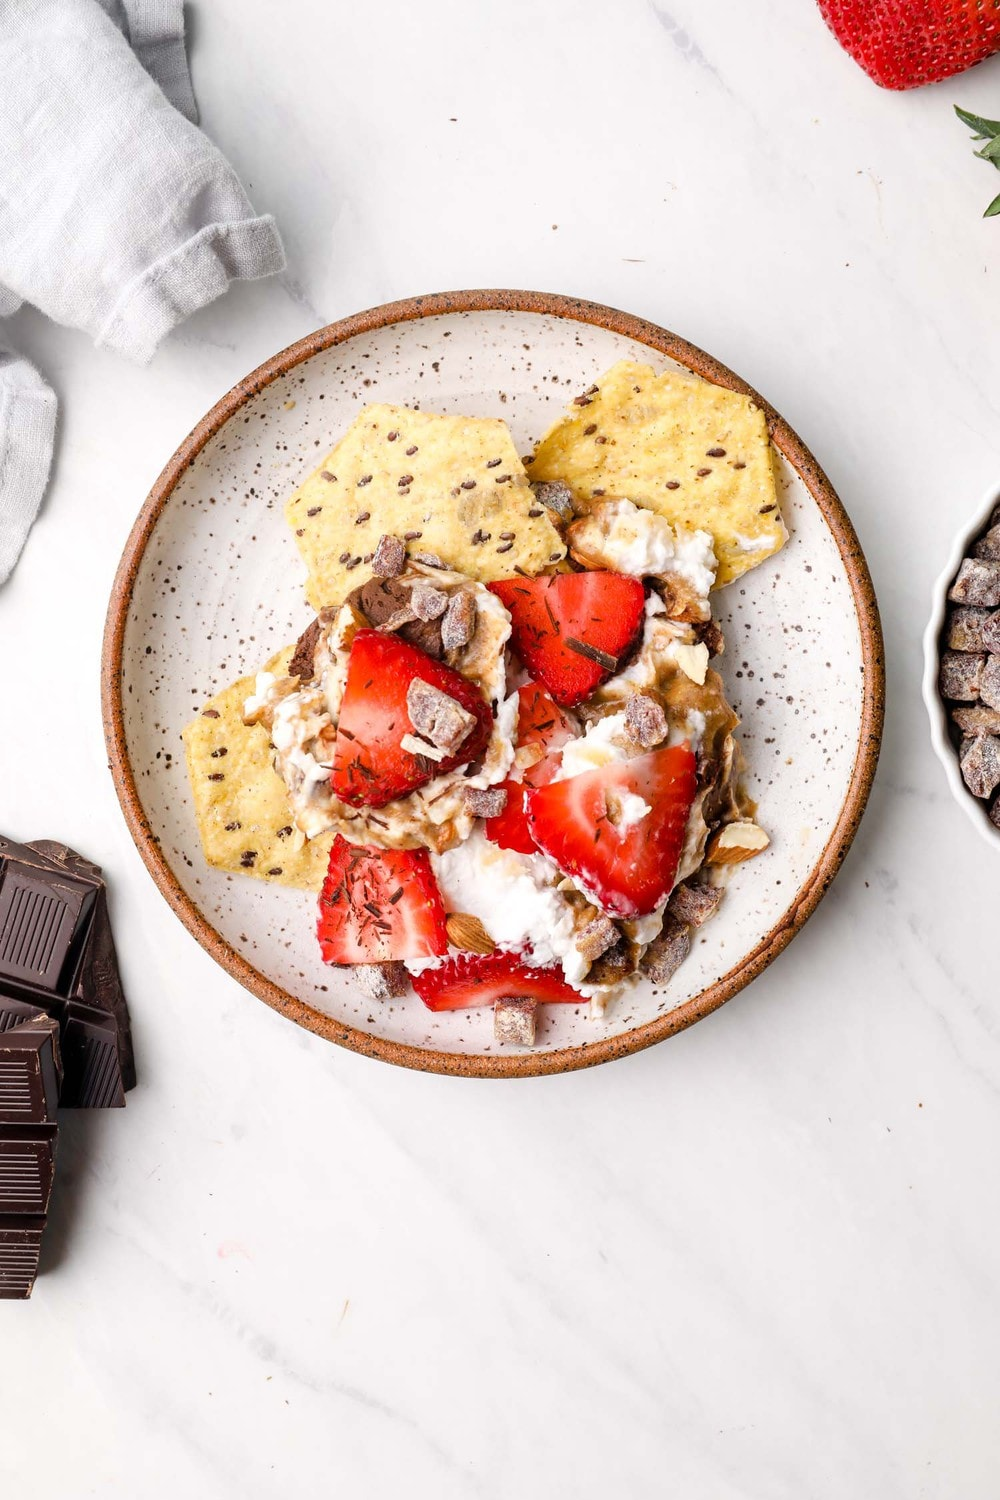 Dessert Seven Layer Dip and crackers on a plate with chocolate and strawberries.